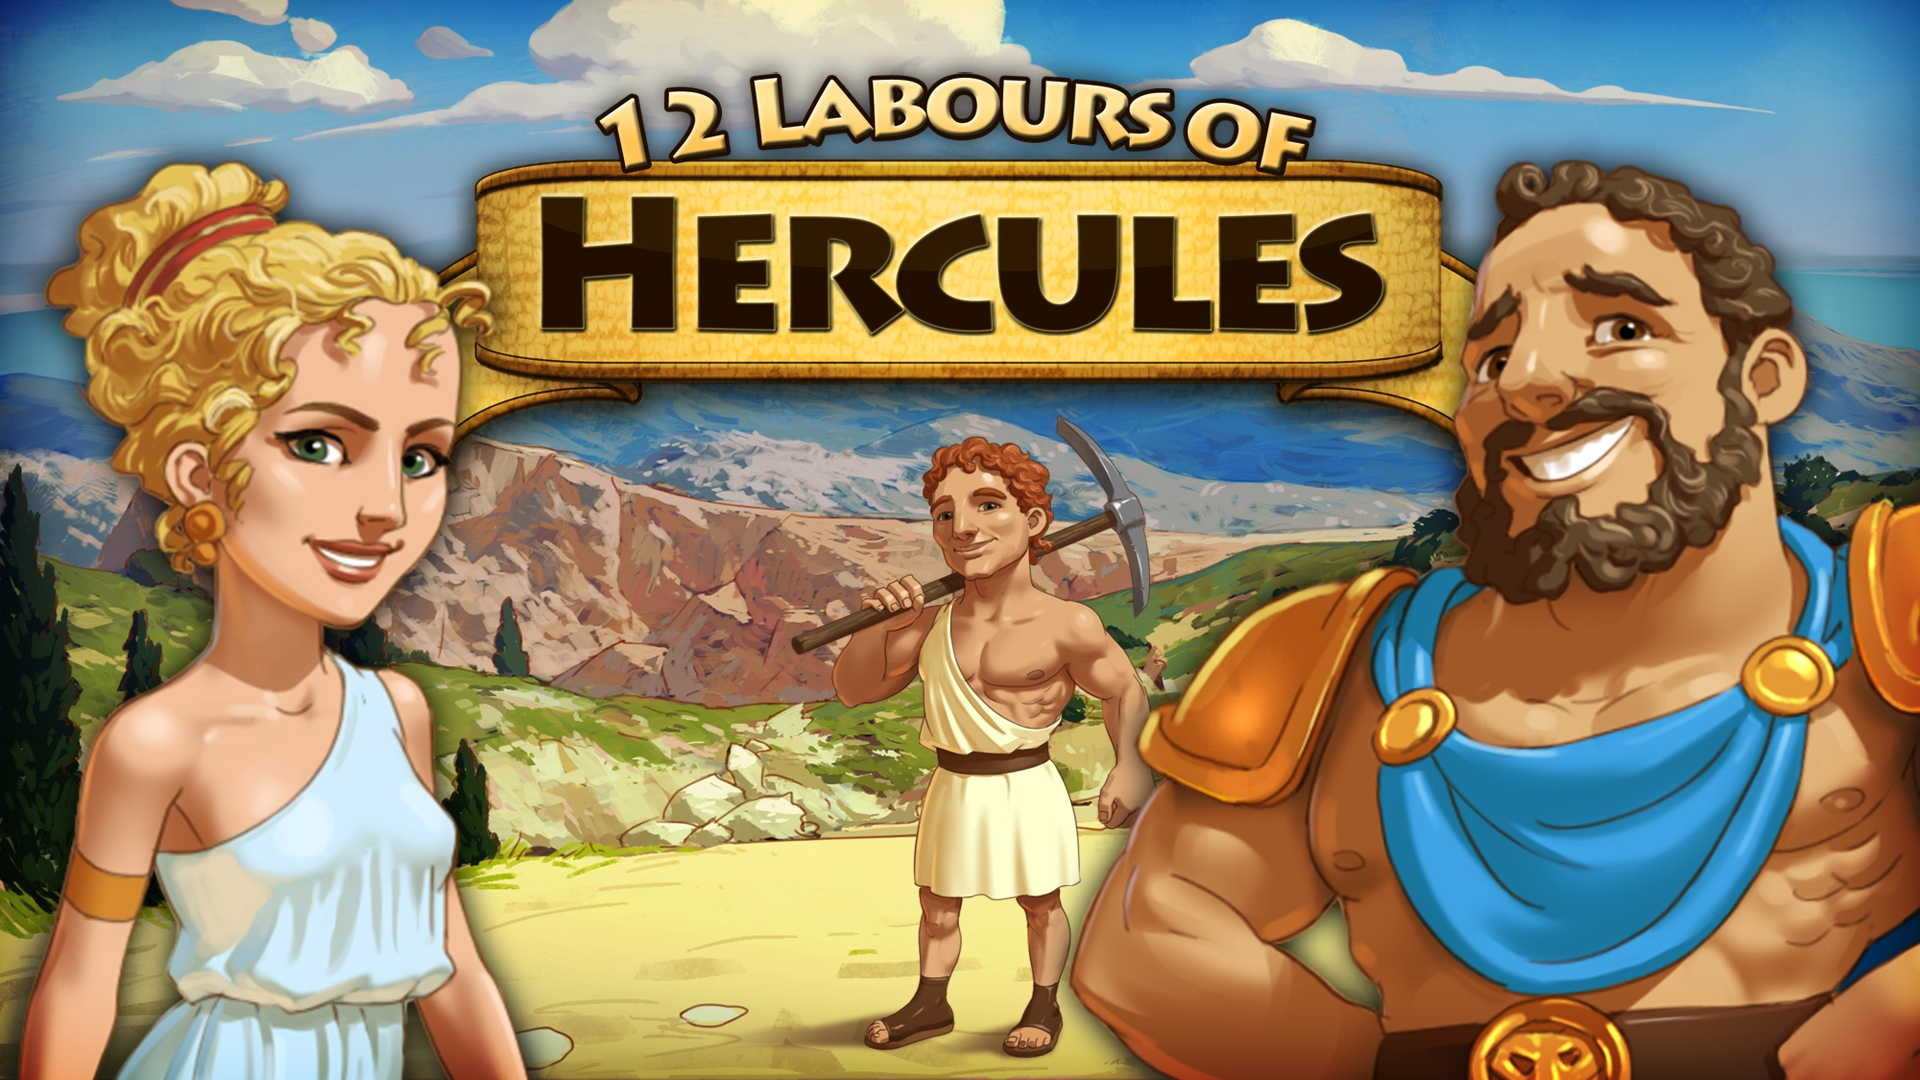 12 Labours of Hercules statistics player count facts